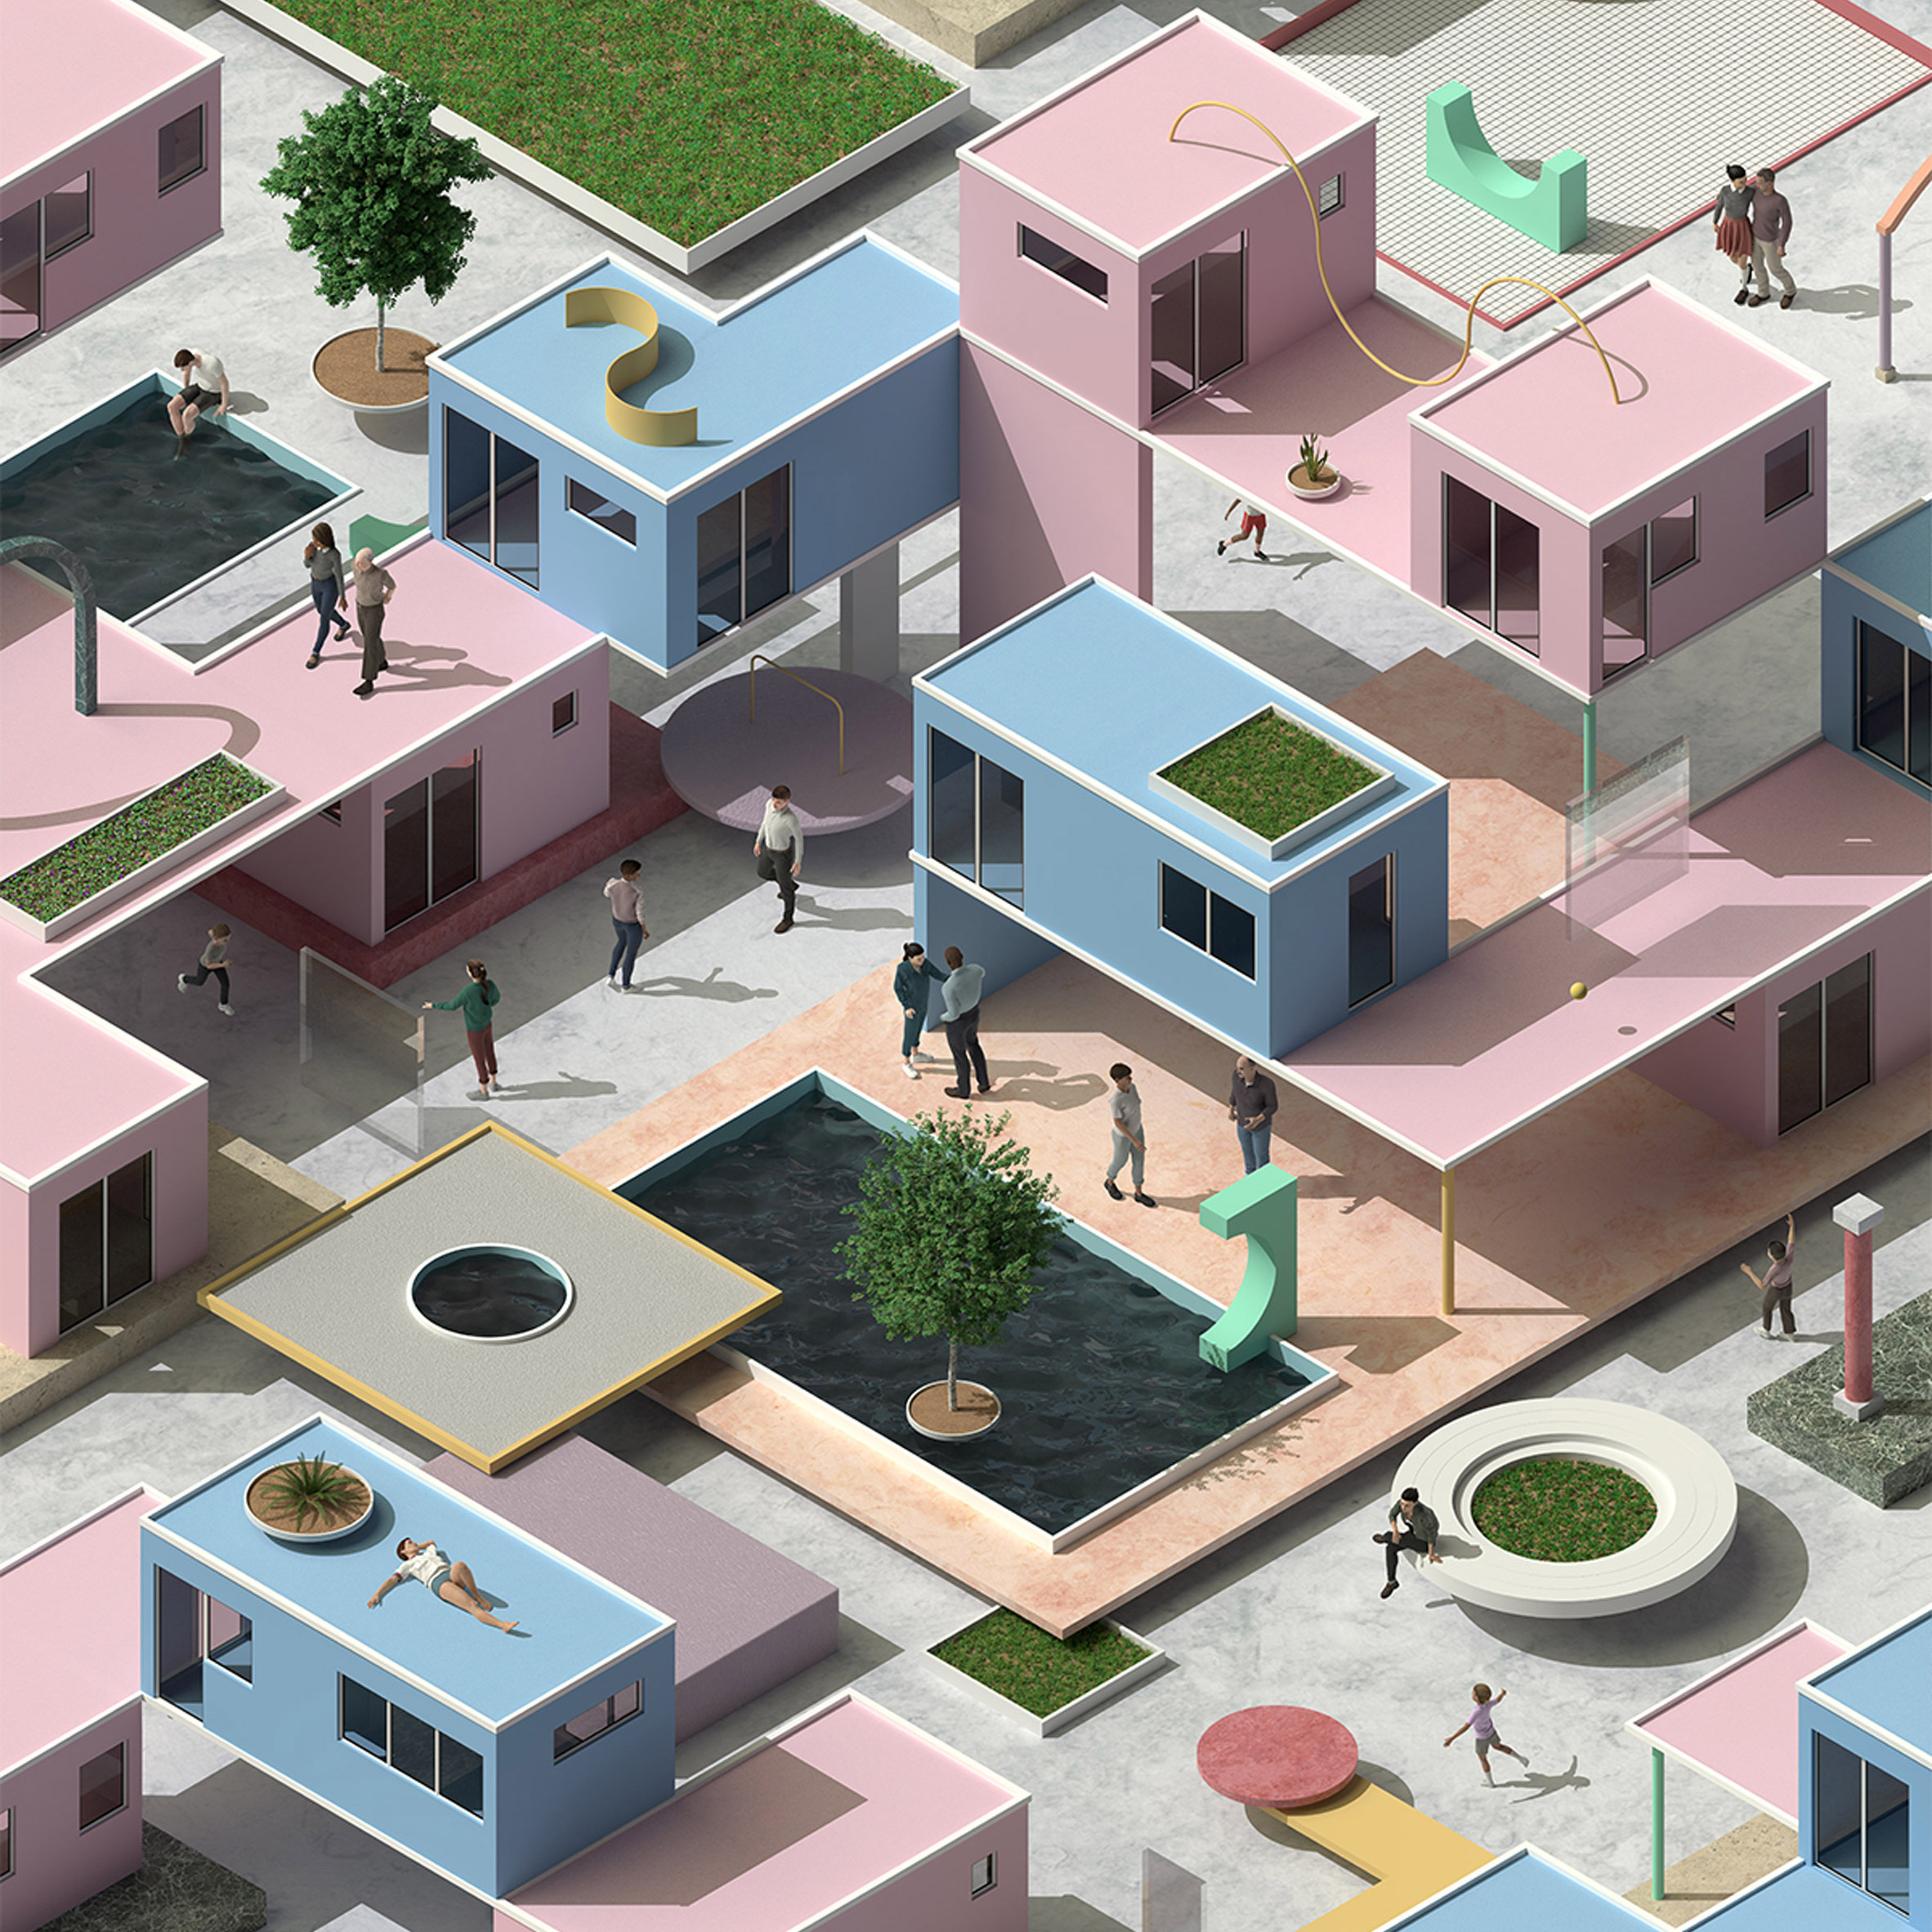 Space10 Imagine: Exploring the Brave New World of Shared Living report